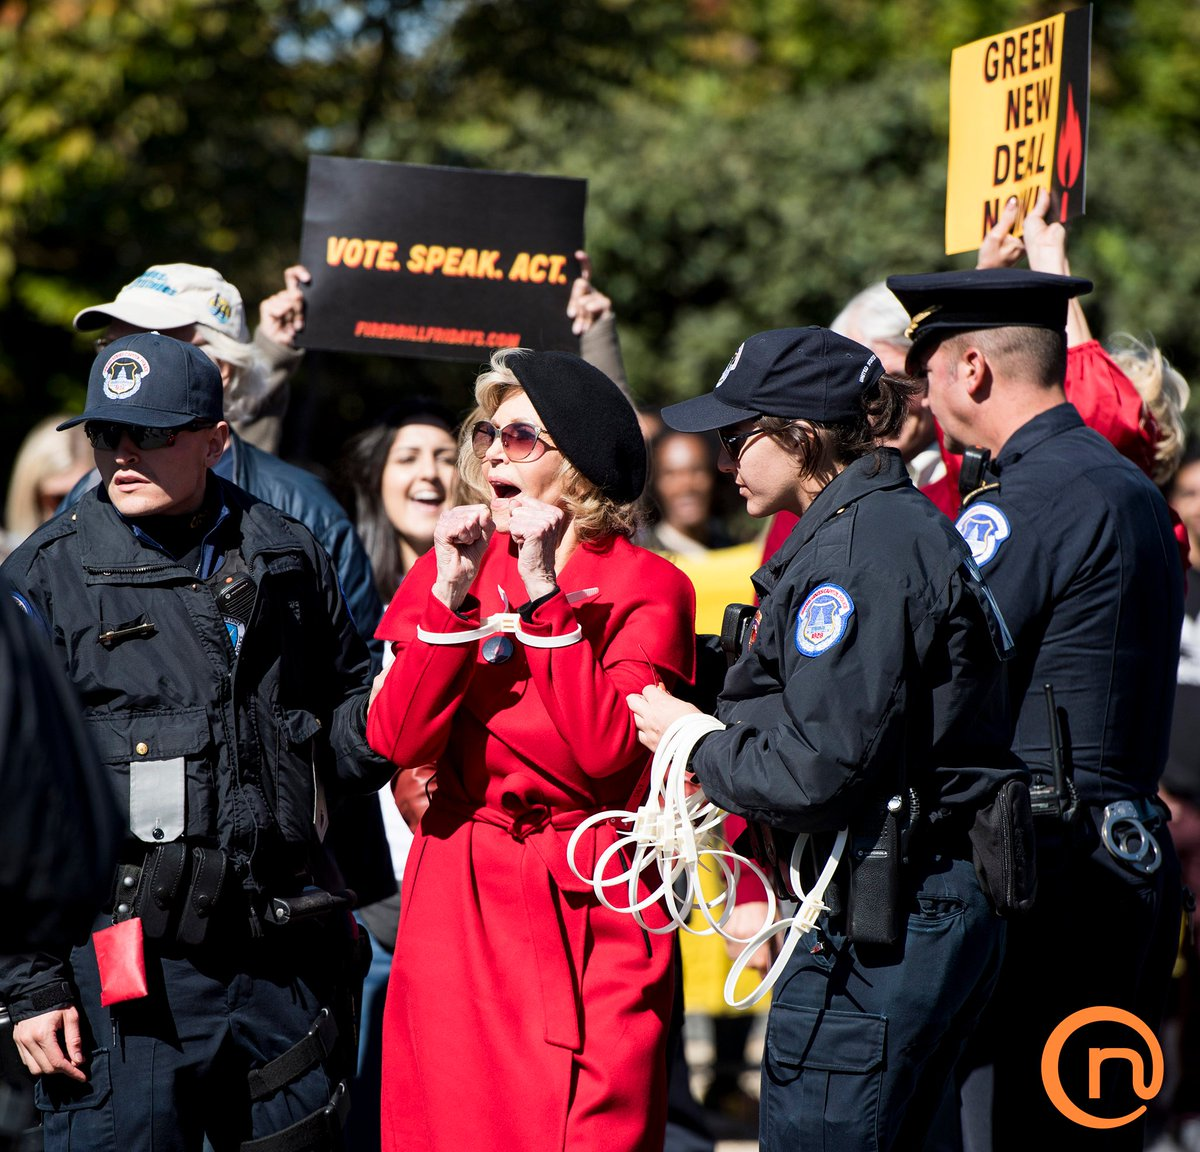 #JaneFonda & #SamWaterston are #arrested at a #protest supporting the #GreenNewDeal in #washingtonDC 10/18/19   rollcallpix122492 Bill Clark #CQ #RollCall #Newscom  #newscomimages #climatechange #climateaction #environment #politics #entertainment #news #graceandfrankie #netflix